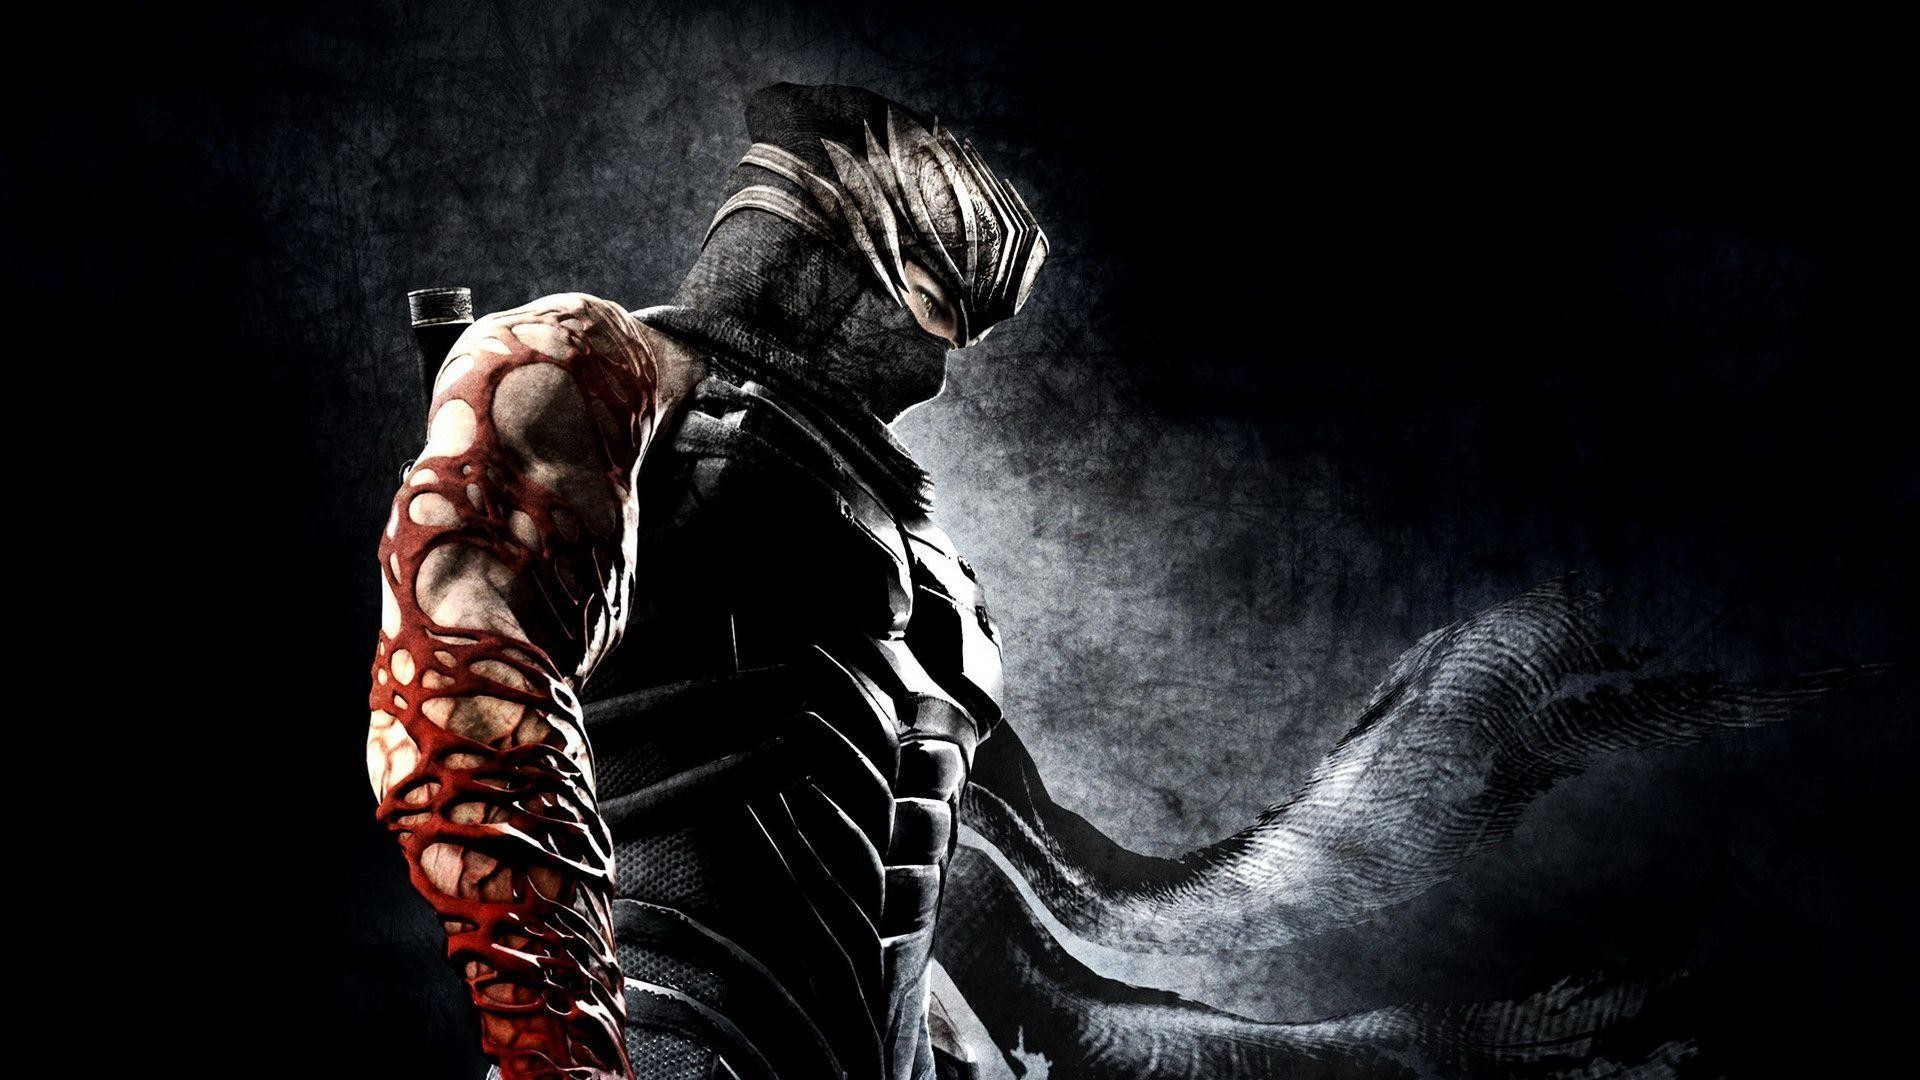 1920x1080 NINJA GAIDEN fantasy anime warrior f wallpaper |  .